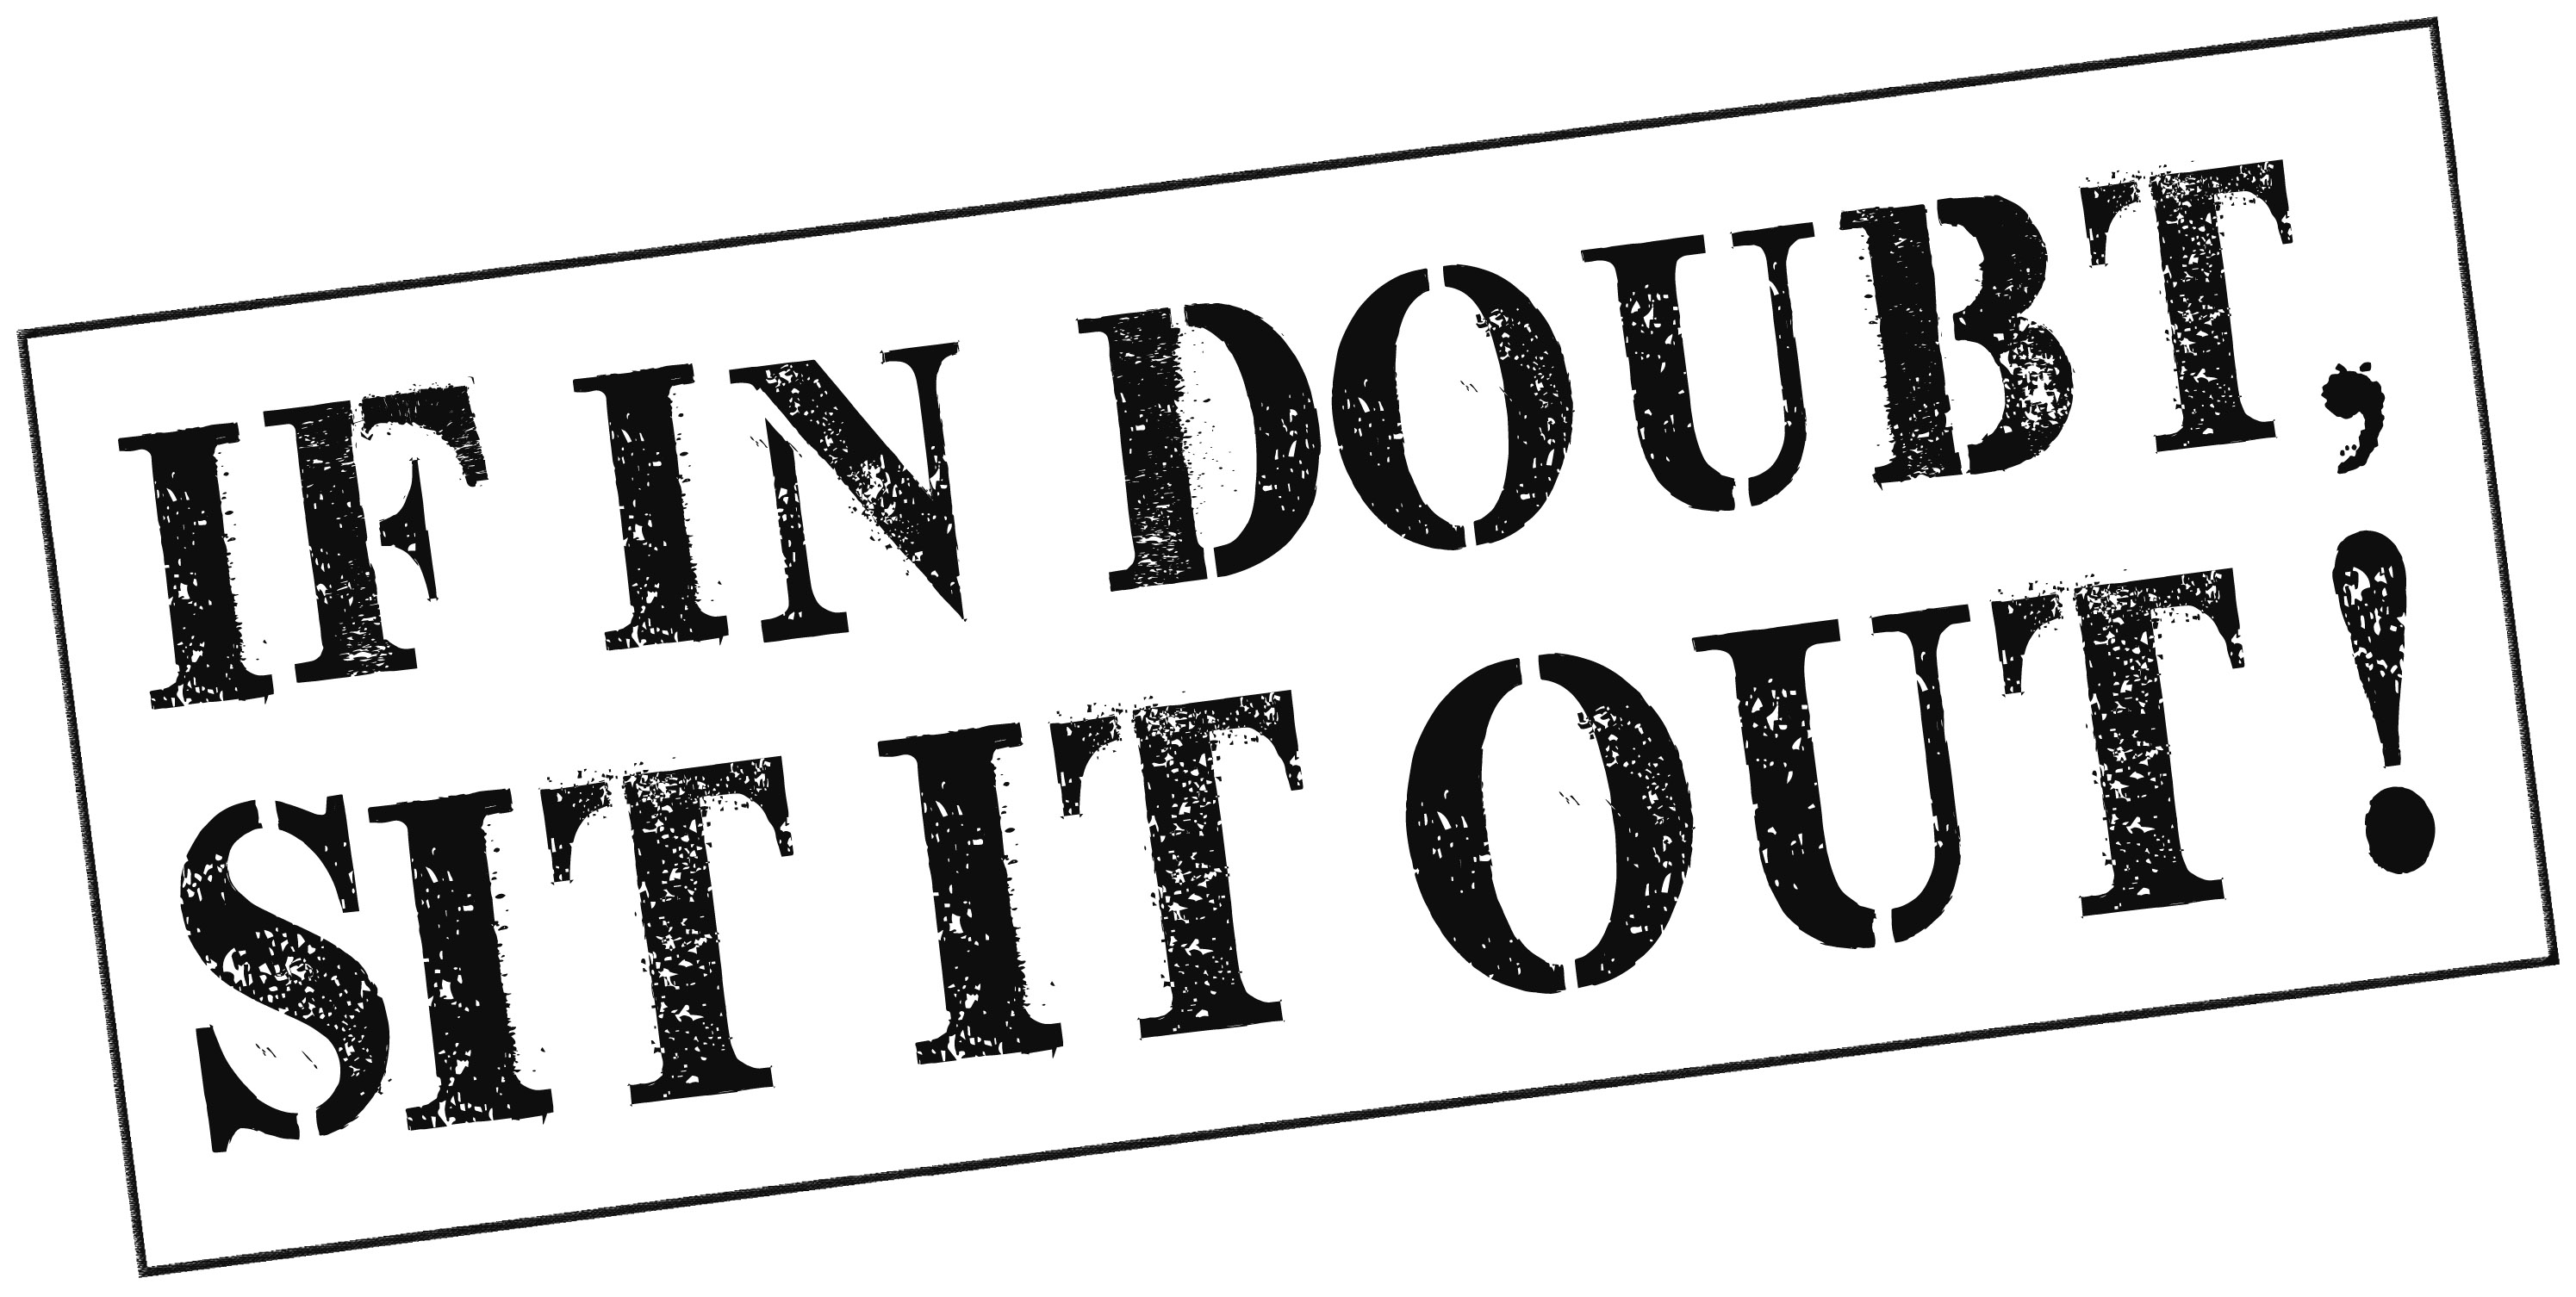 Headway's 'If in doubt, sit it out' campaign logo